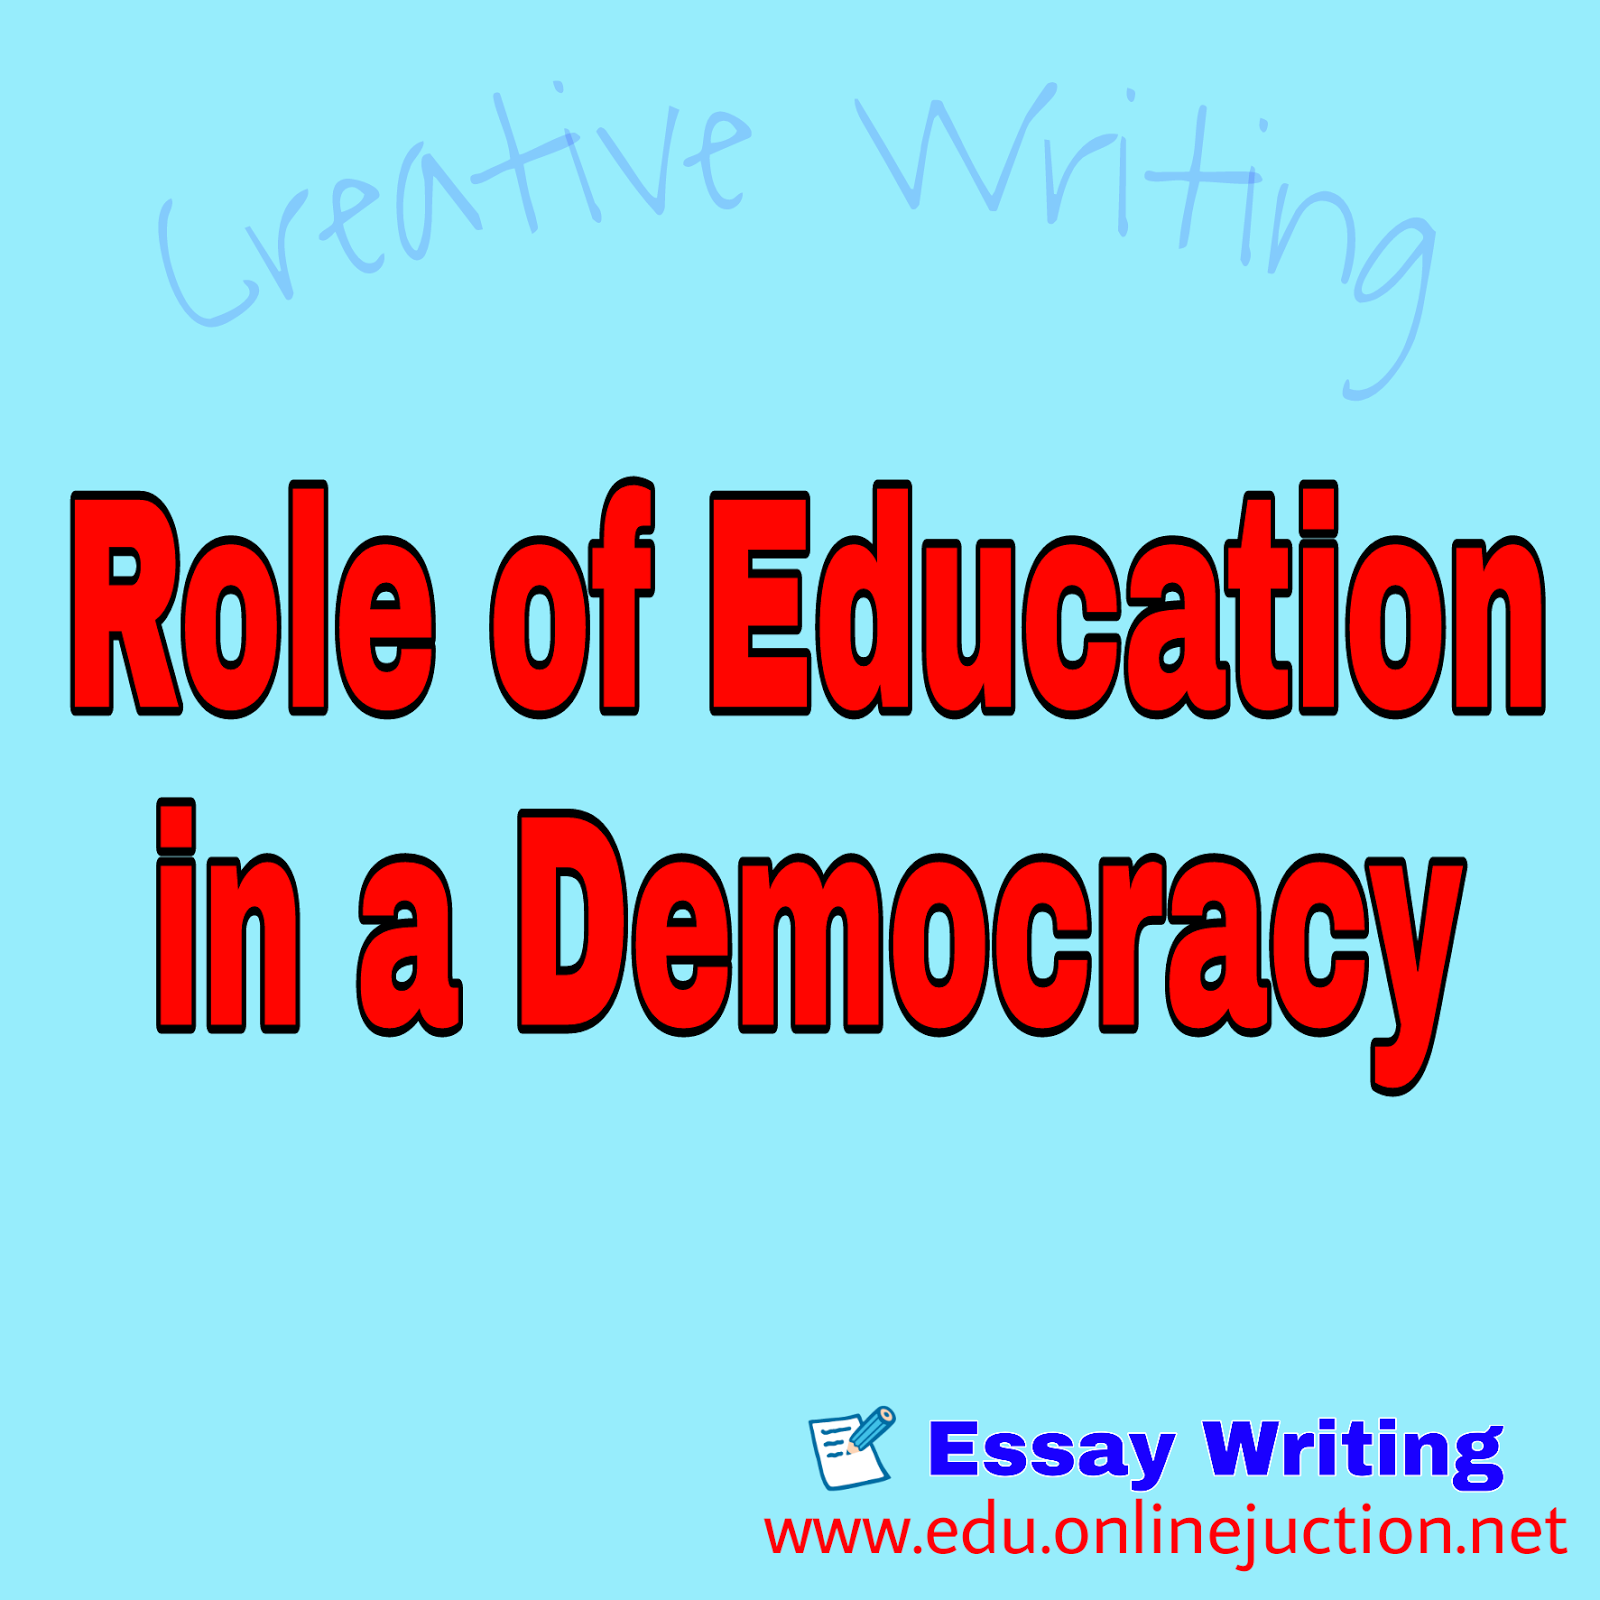 essay on role of education in democracy